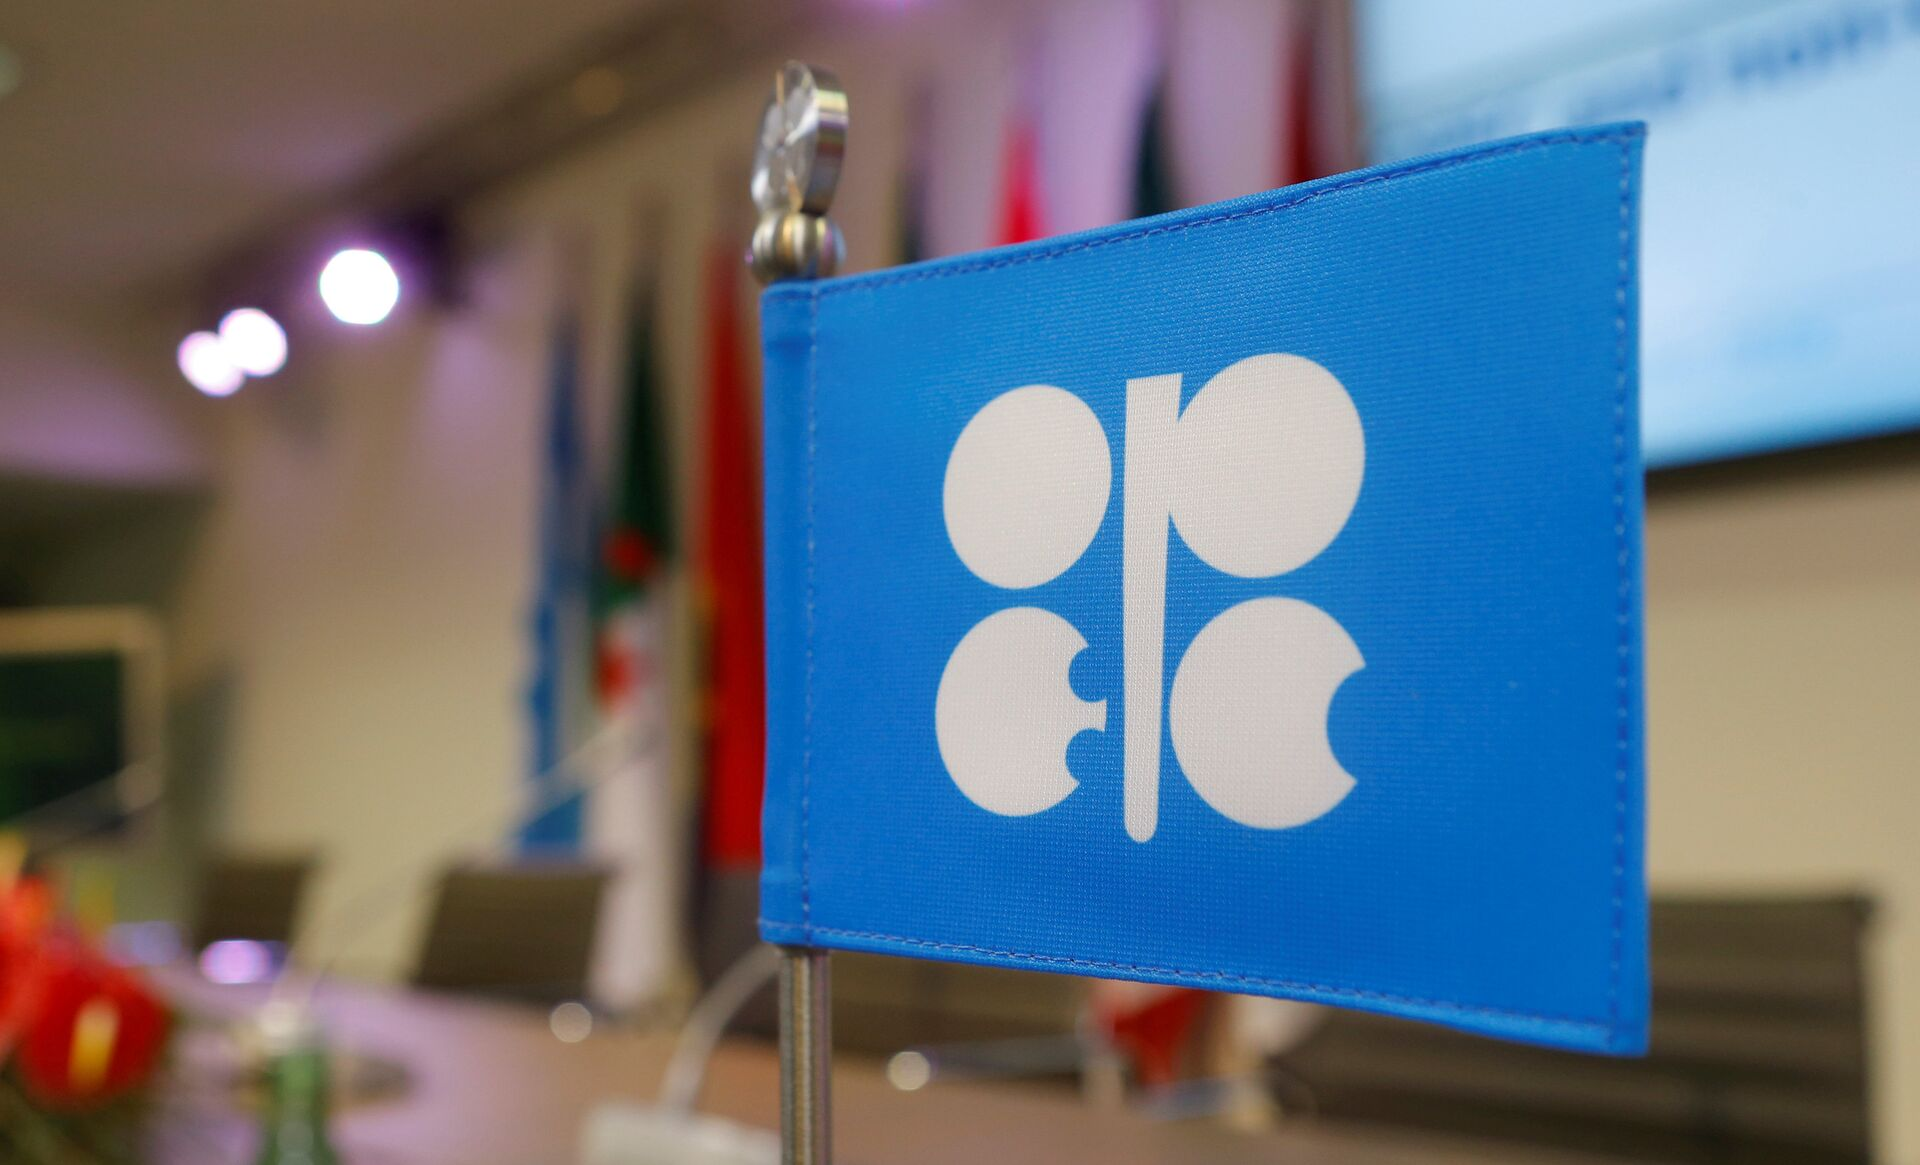 Jittery Oil Prices Recover as Suez Canal Unblocked, Traders Anticipate OPEC+ Production Cut Rollover - Sputnik International, 1920, 29.03.2021